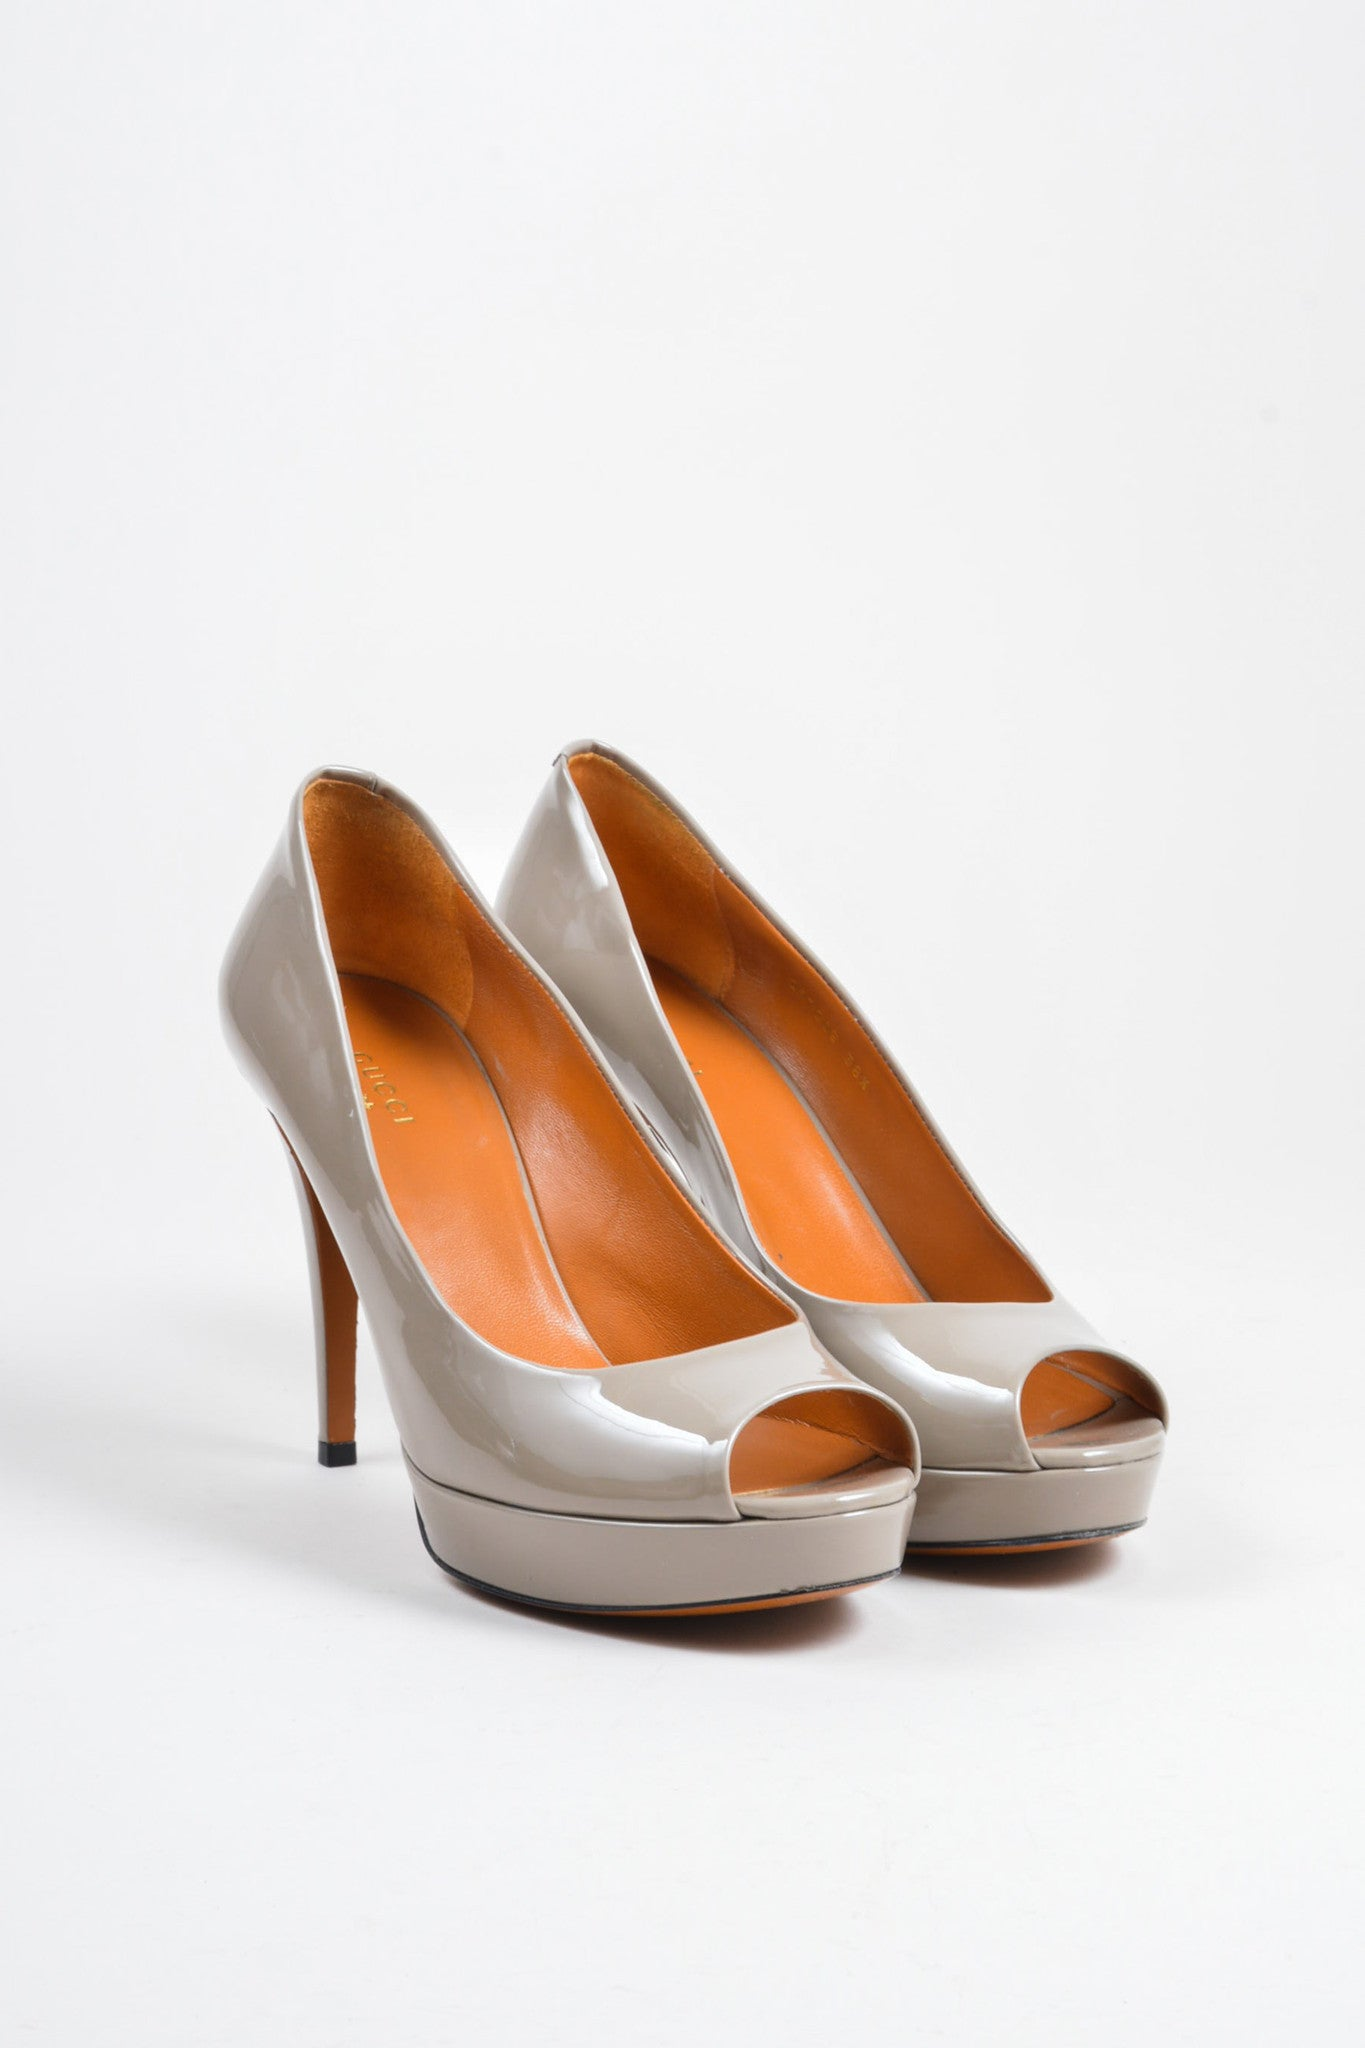 Grey Gucci Patent Leather Platform Peep Toe Pumps Frontview